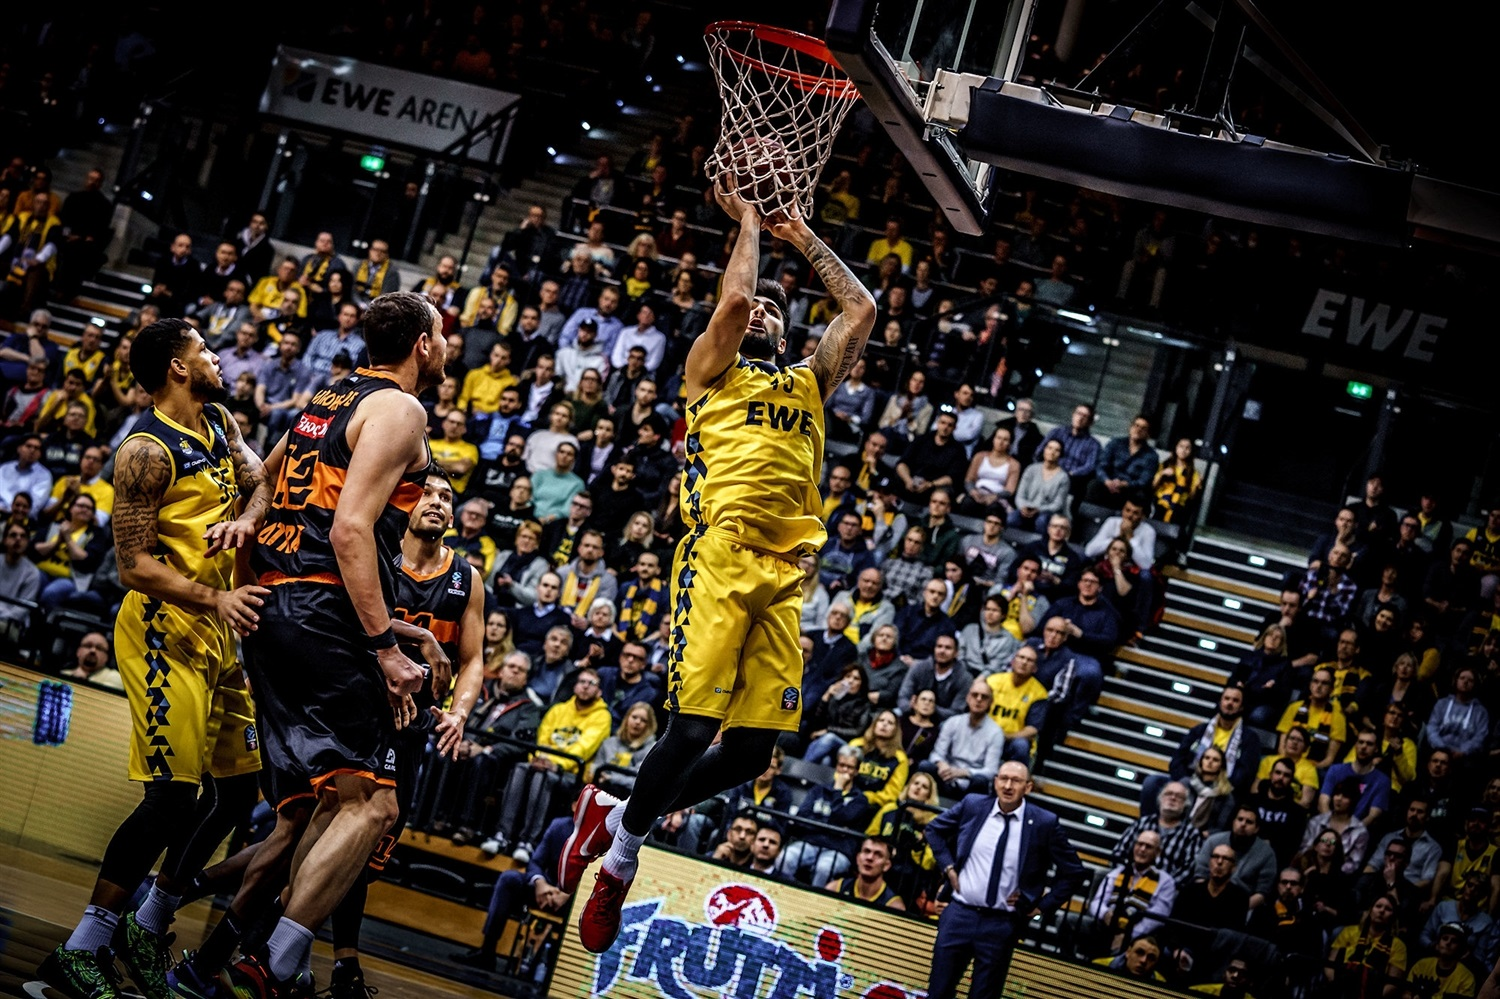 Marcel Kessen - EWE Baskets Oldenburg (photo Ulf Duda - fotoduda.de) - EC19